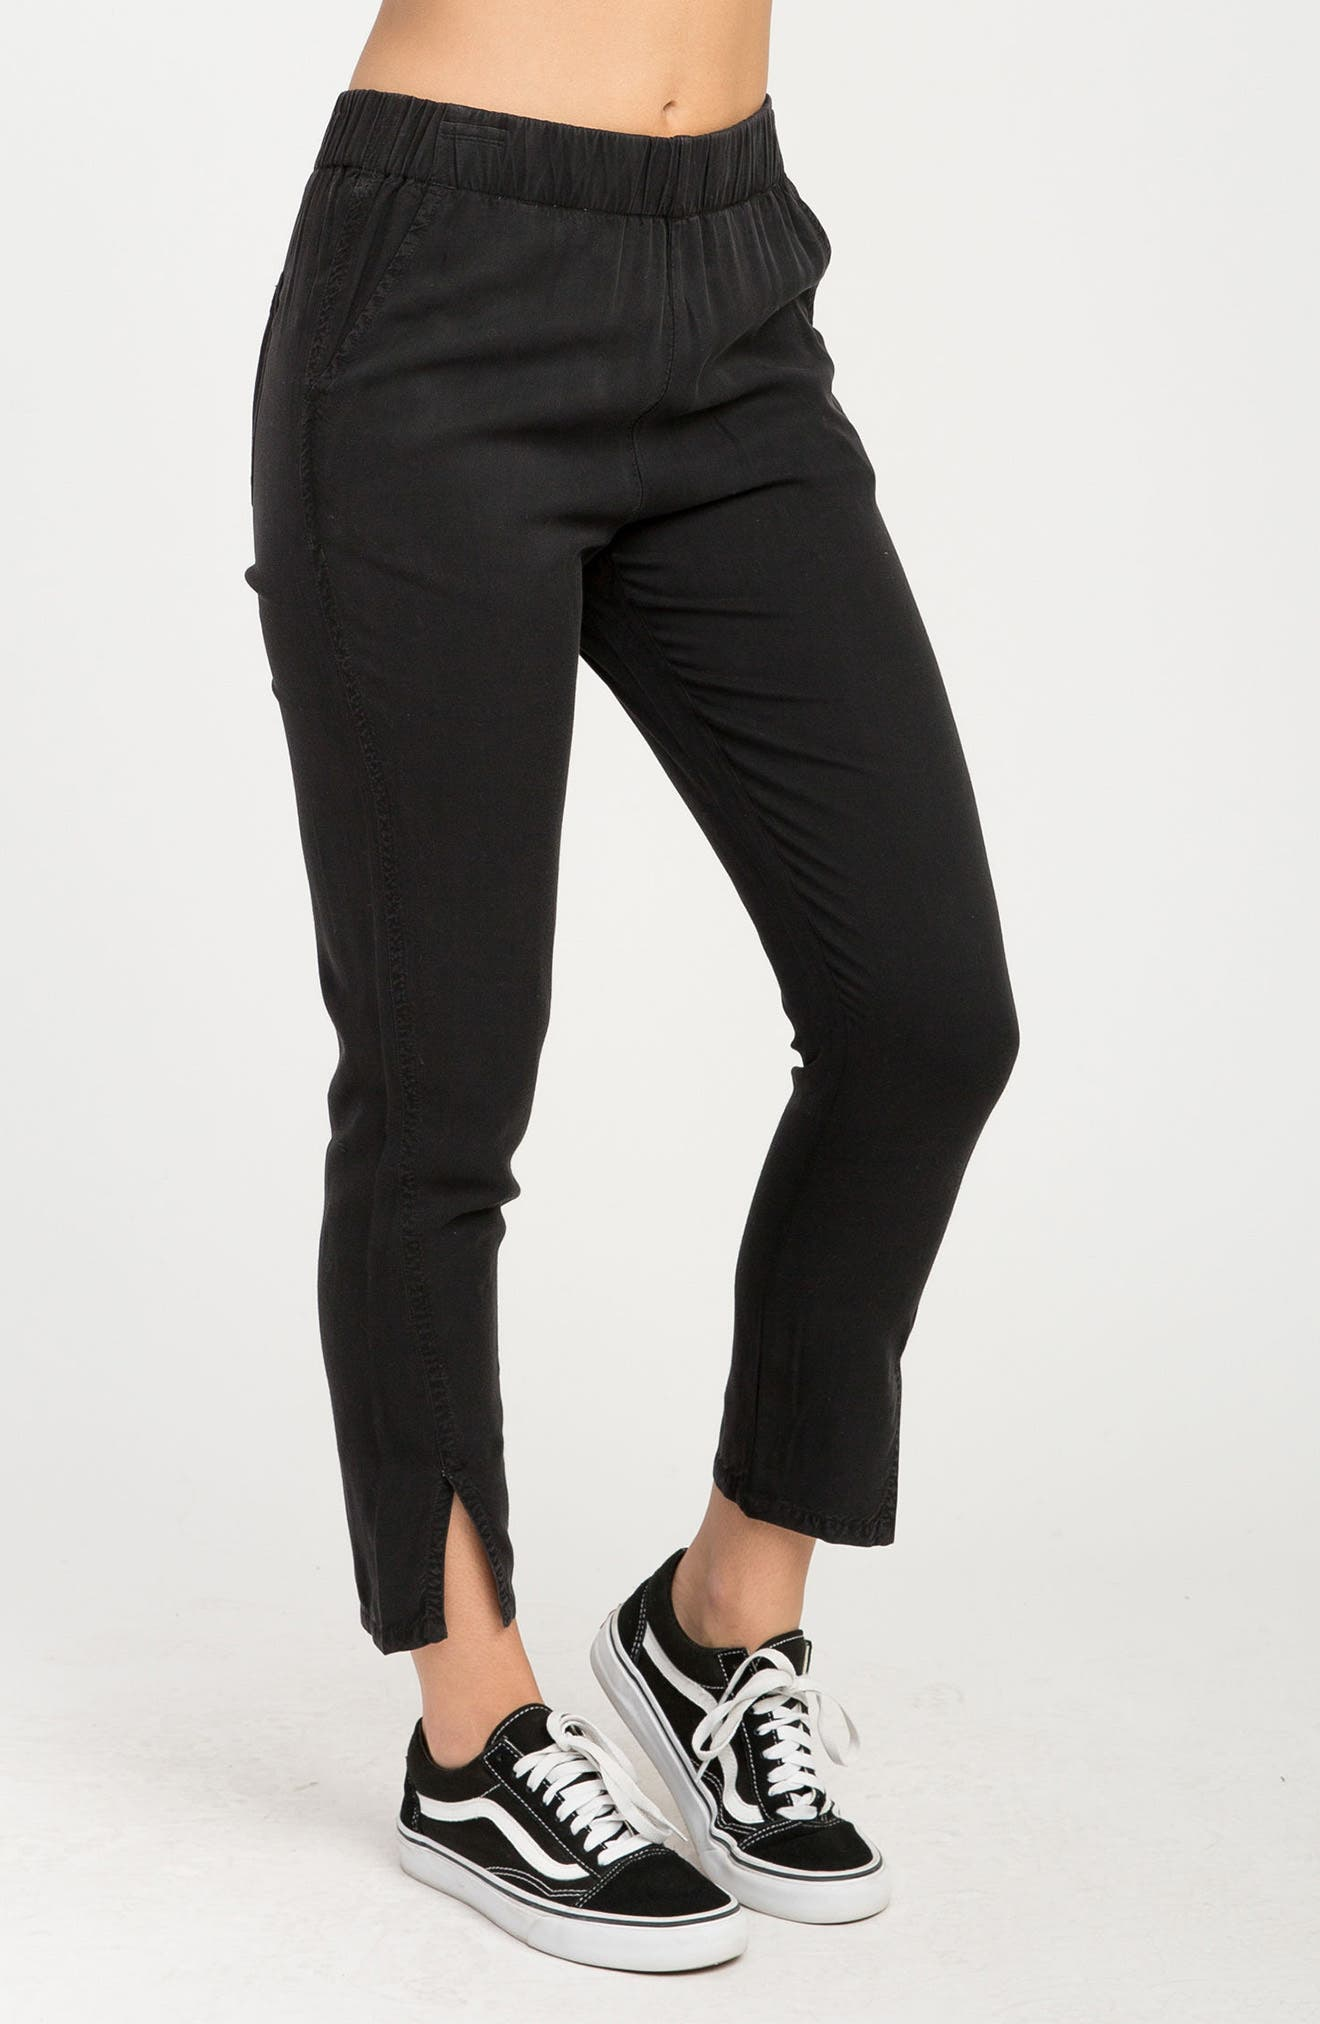 Chill Vibes Ankle Pants,                             Alternate thumbnail 6, color,                             001